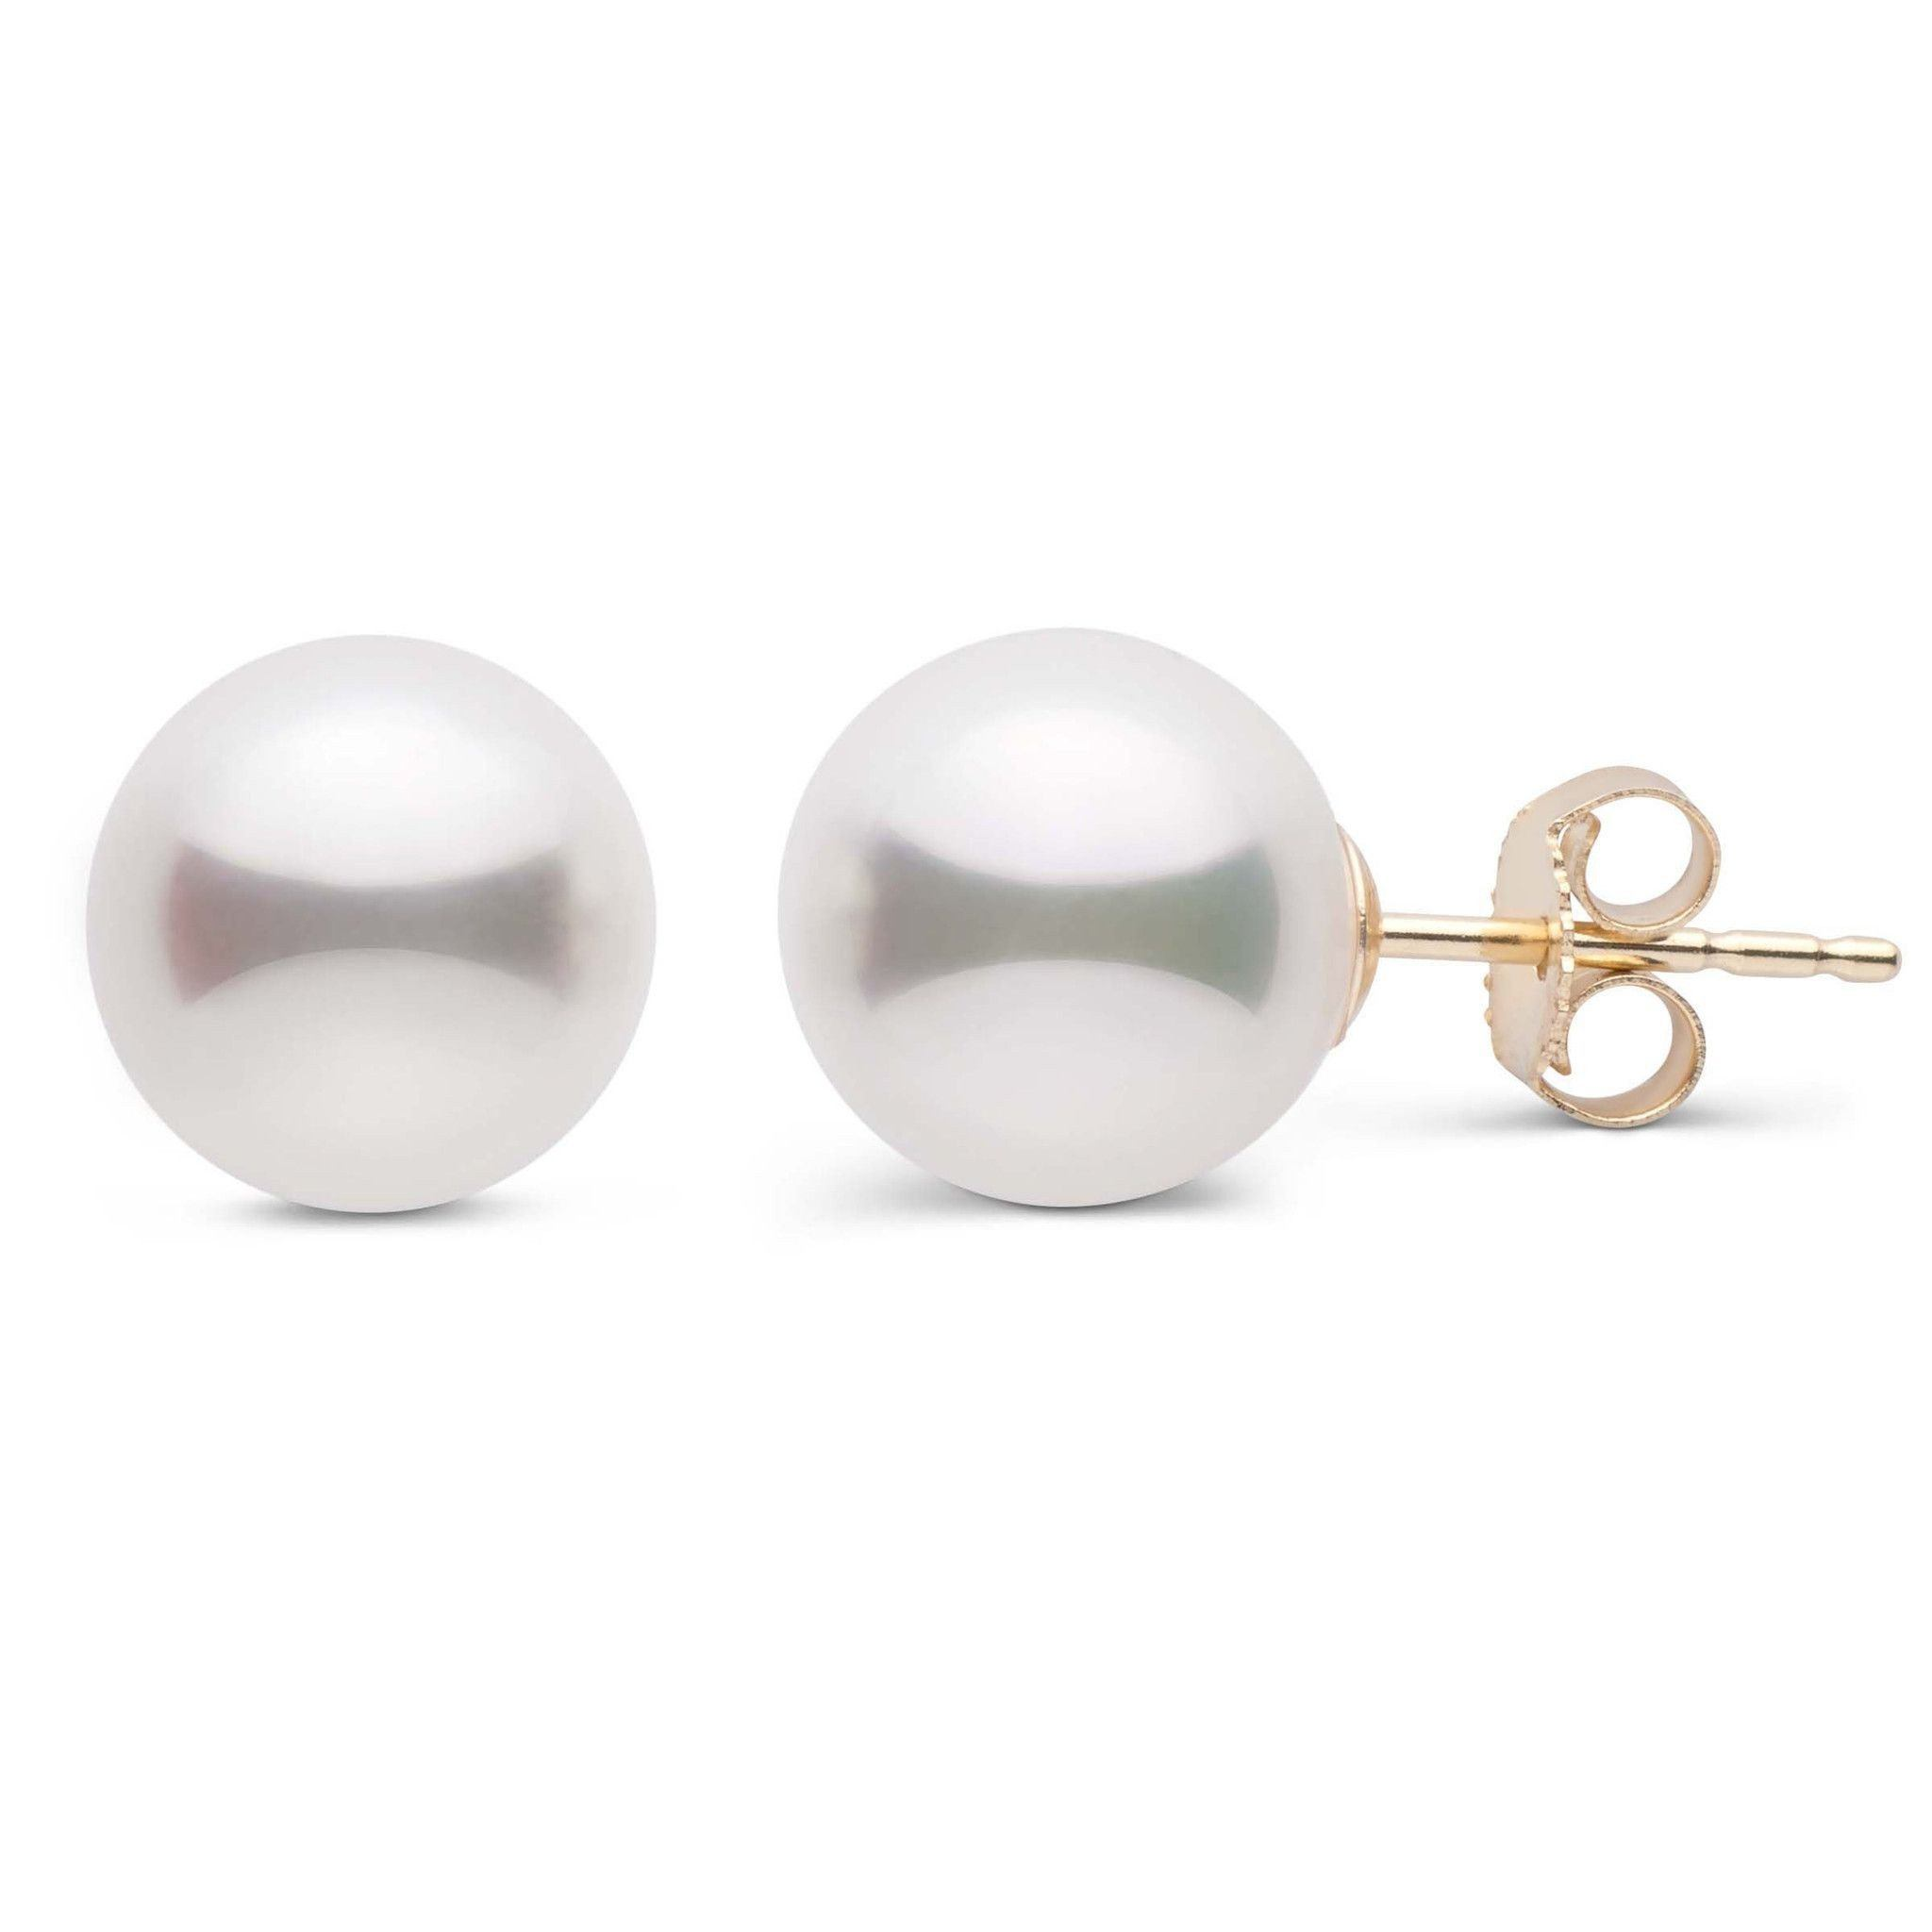 8.5-9.0 mm White Akoya AA+ Pearl Stud Earrings